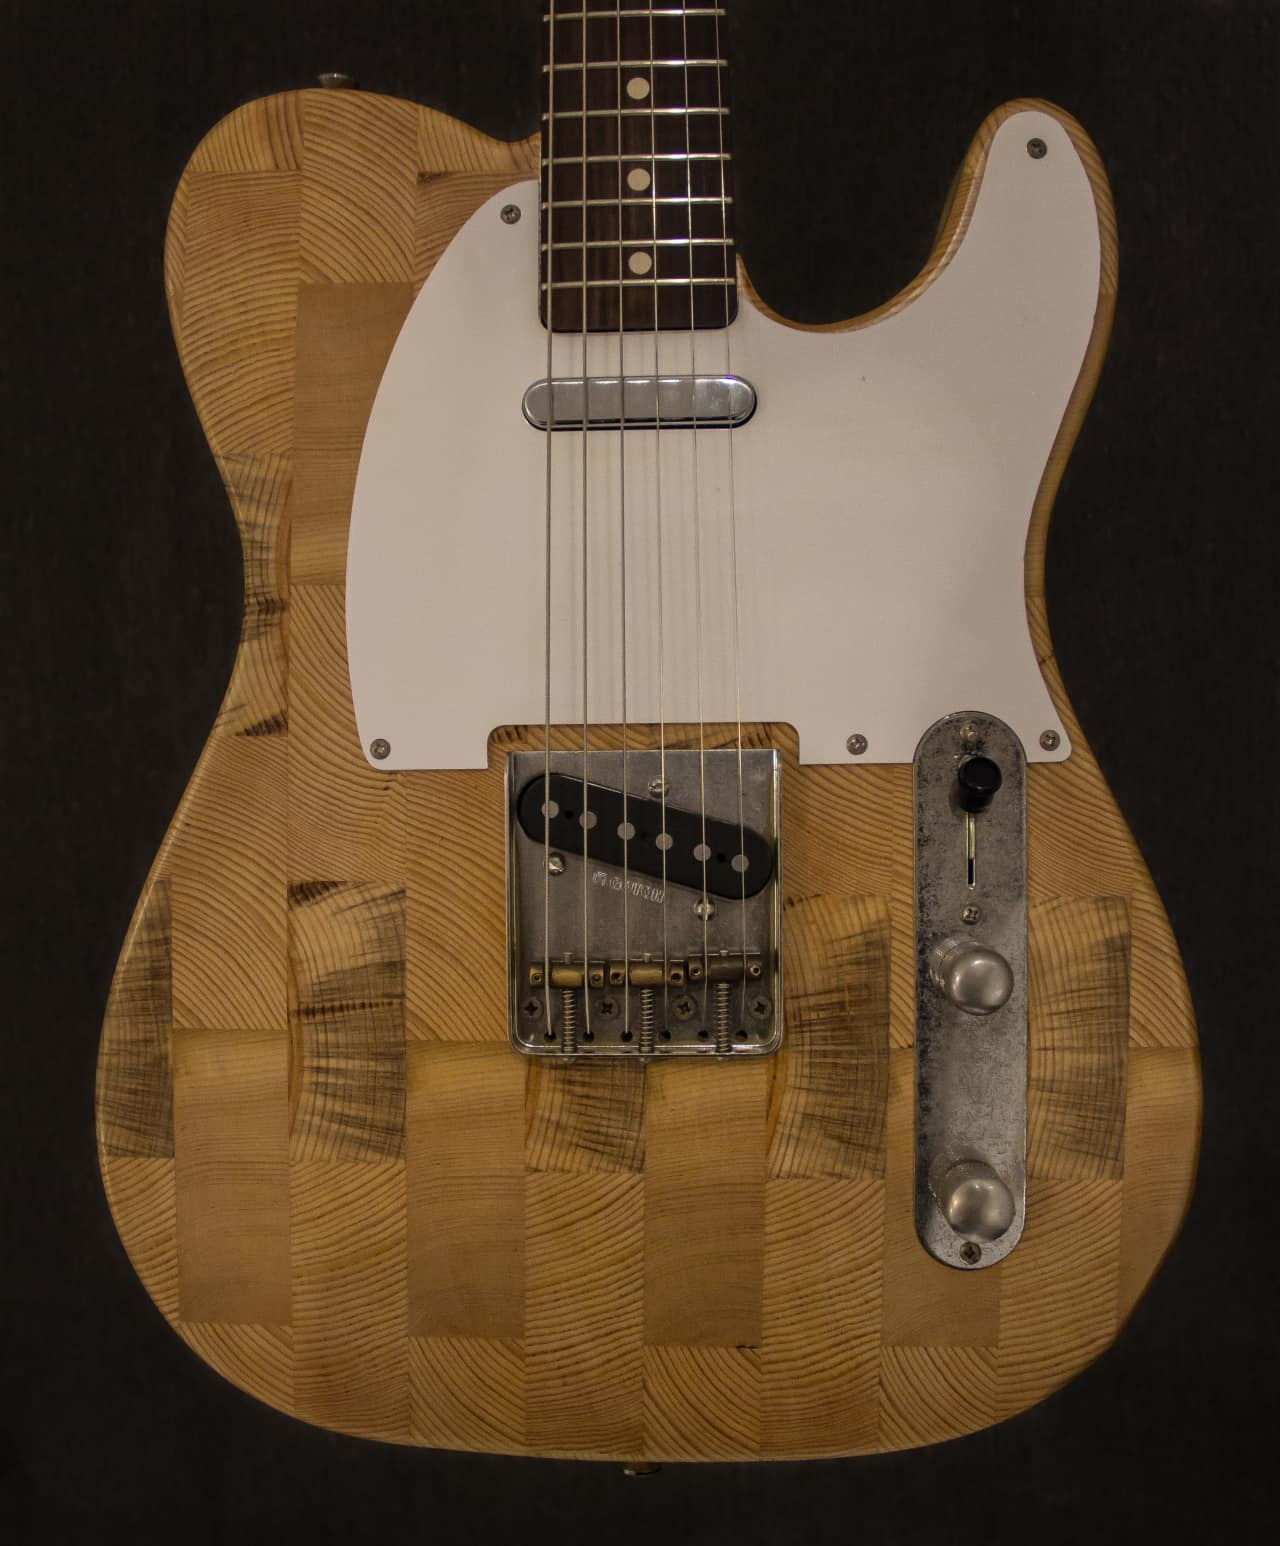 Wallace Detroit Guitar Made From Reclaimed Wood From